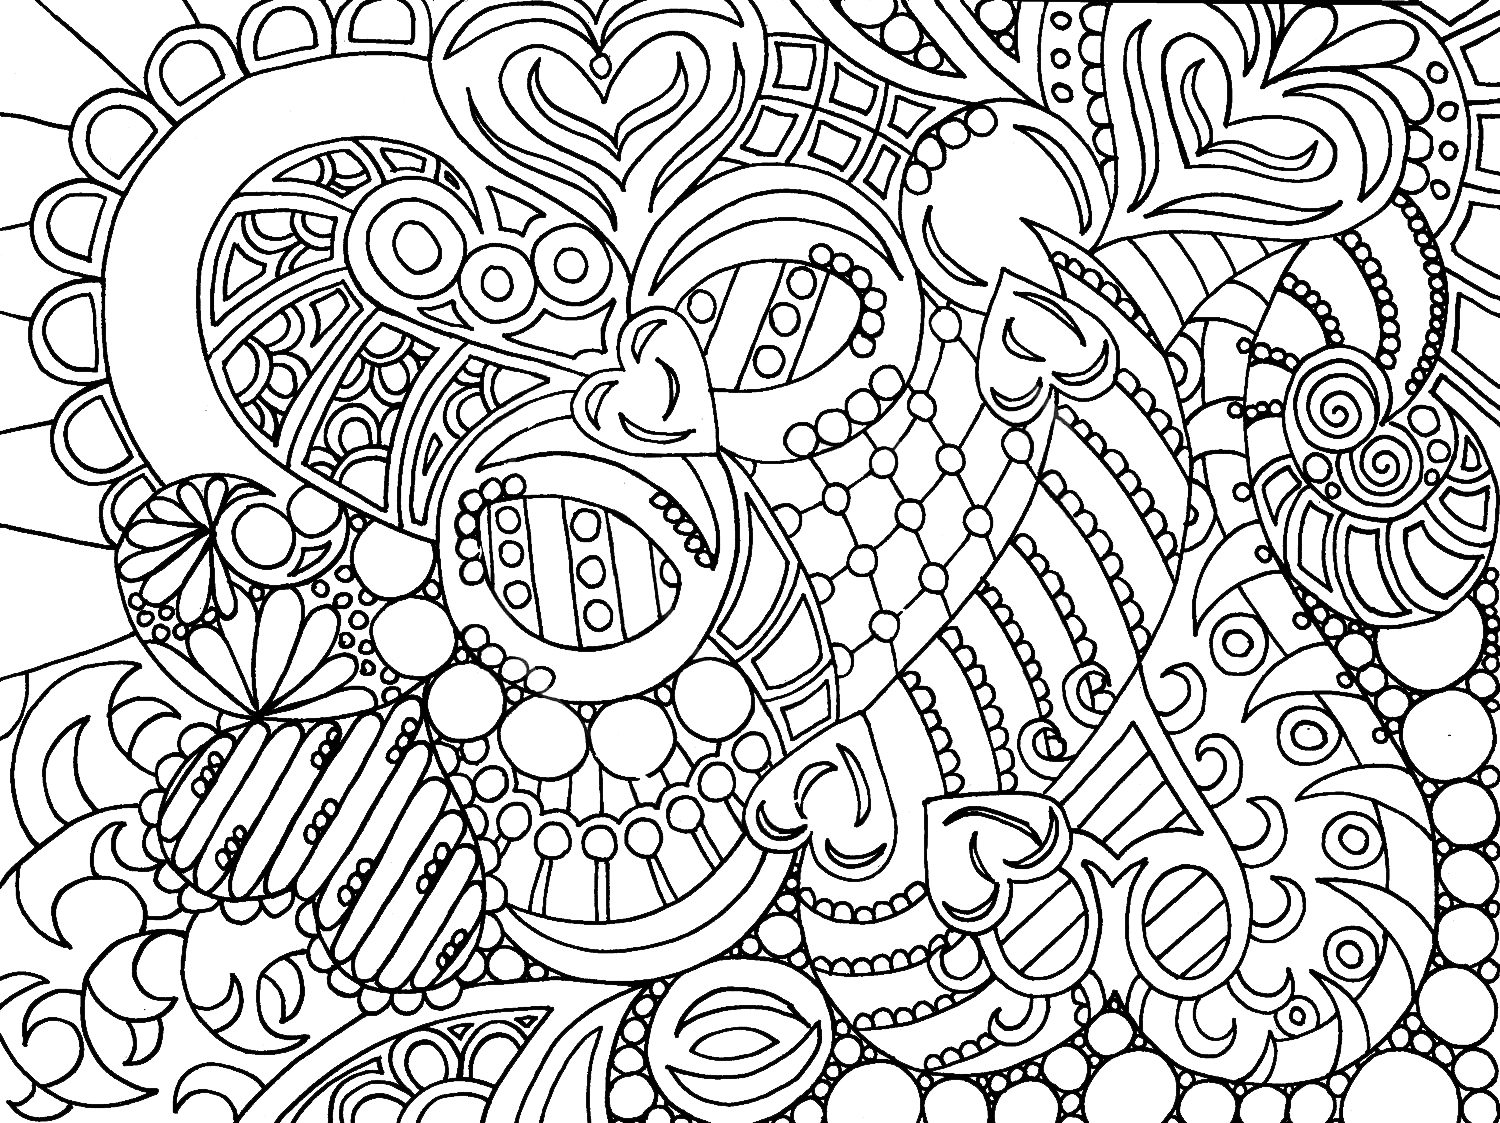 Printable coloring pages for teen ~ coloring pages to print for teenagers | Only Coloring ...